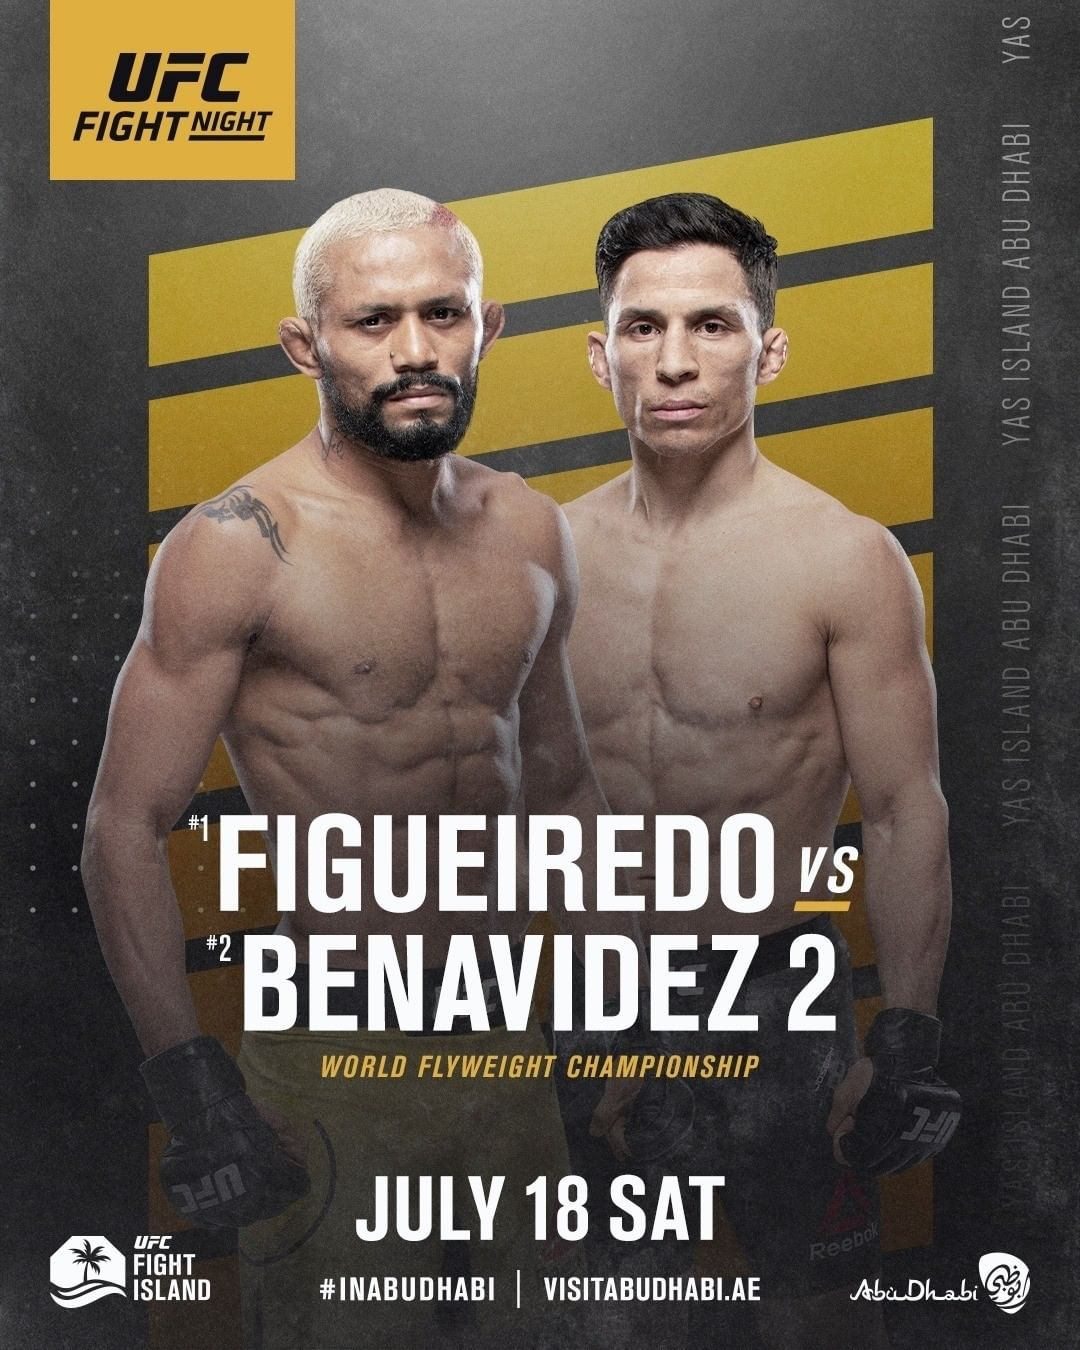 UFC Fight Night 172 results poster